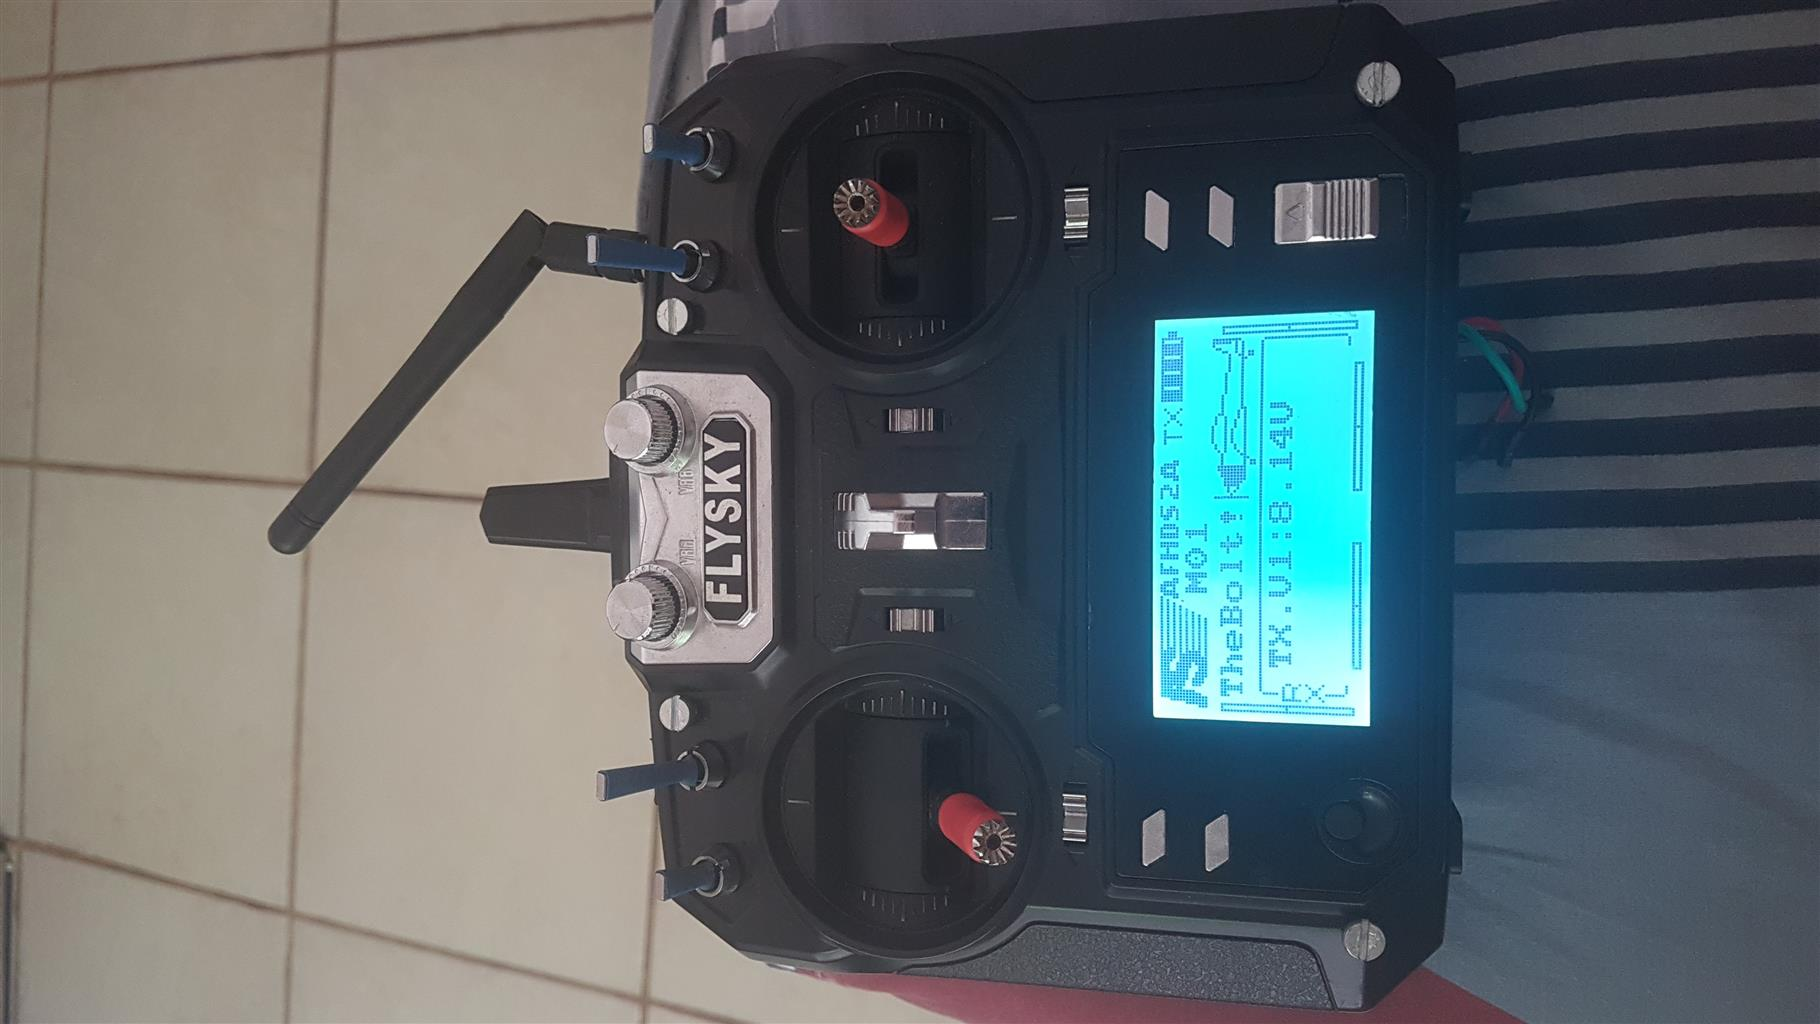 FPV setup with remote, batteries, charger and parts.